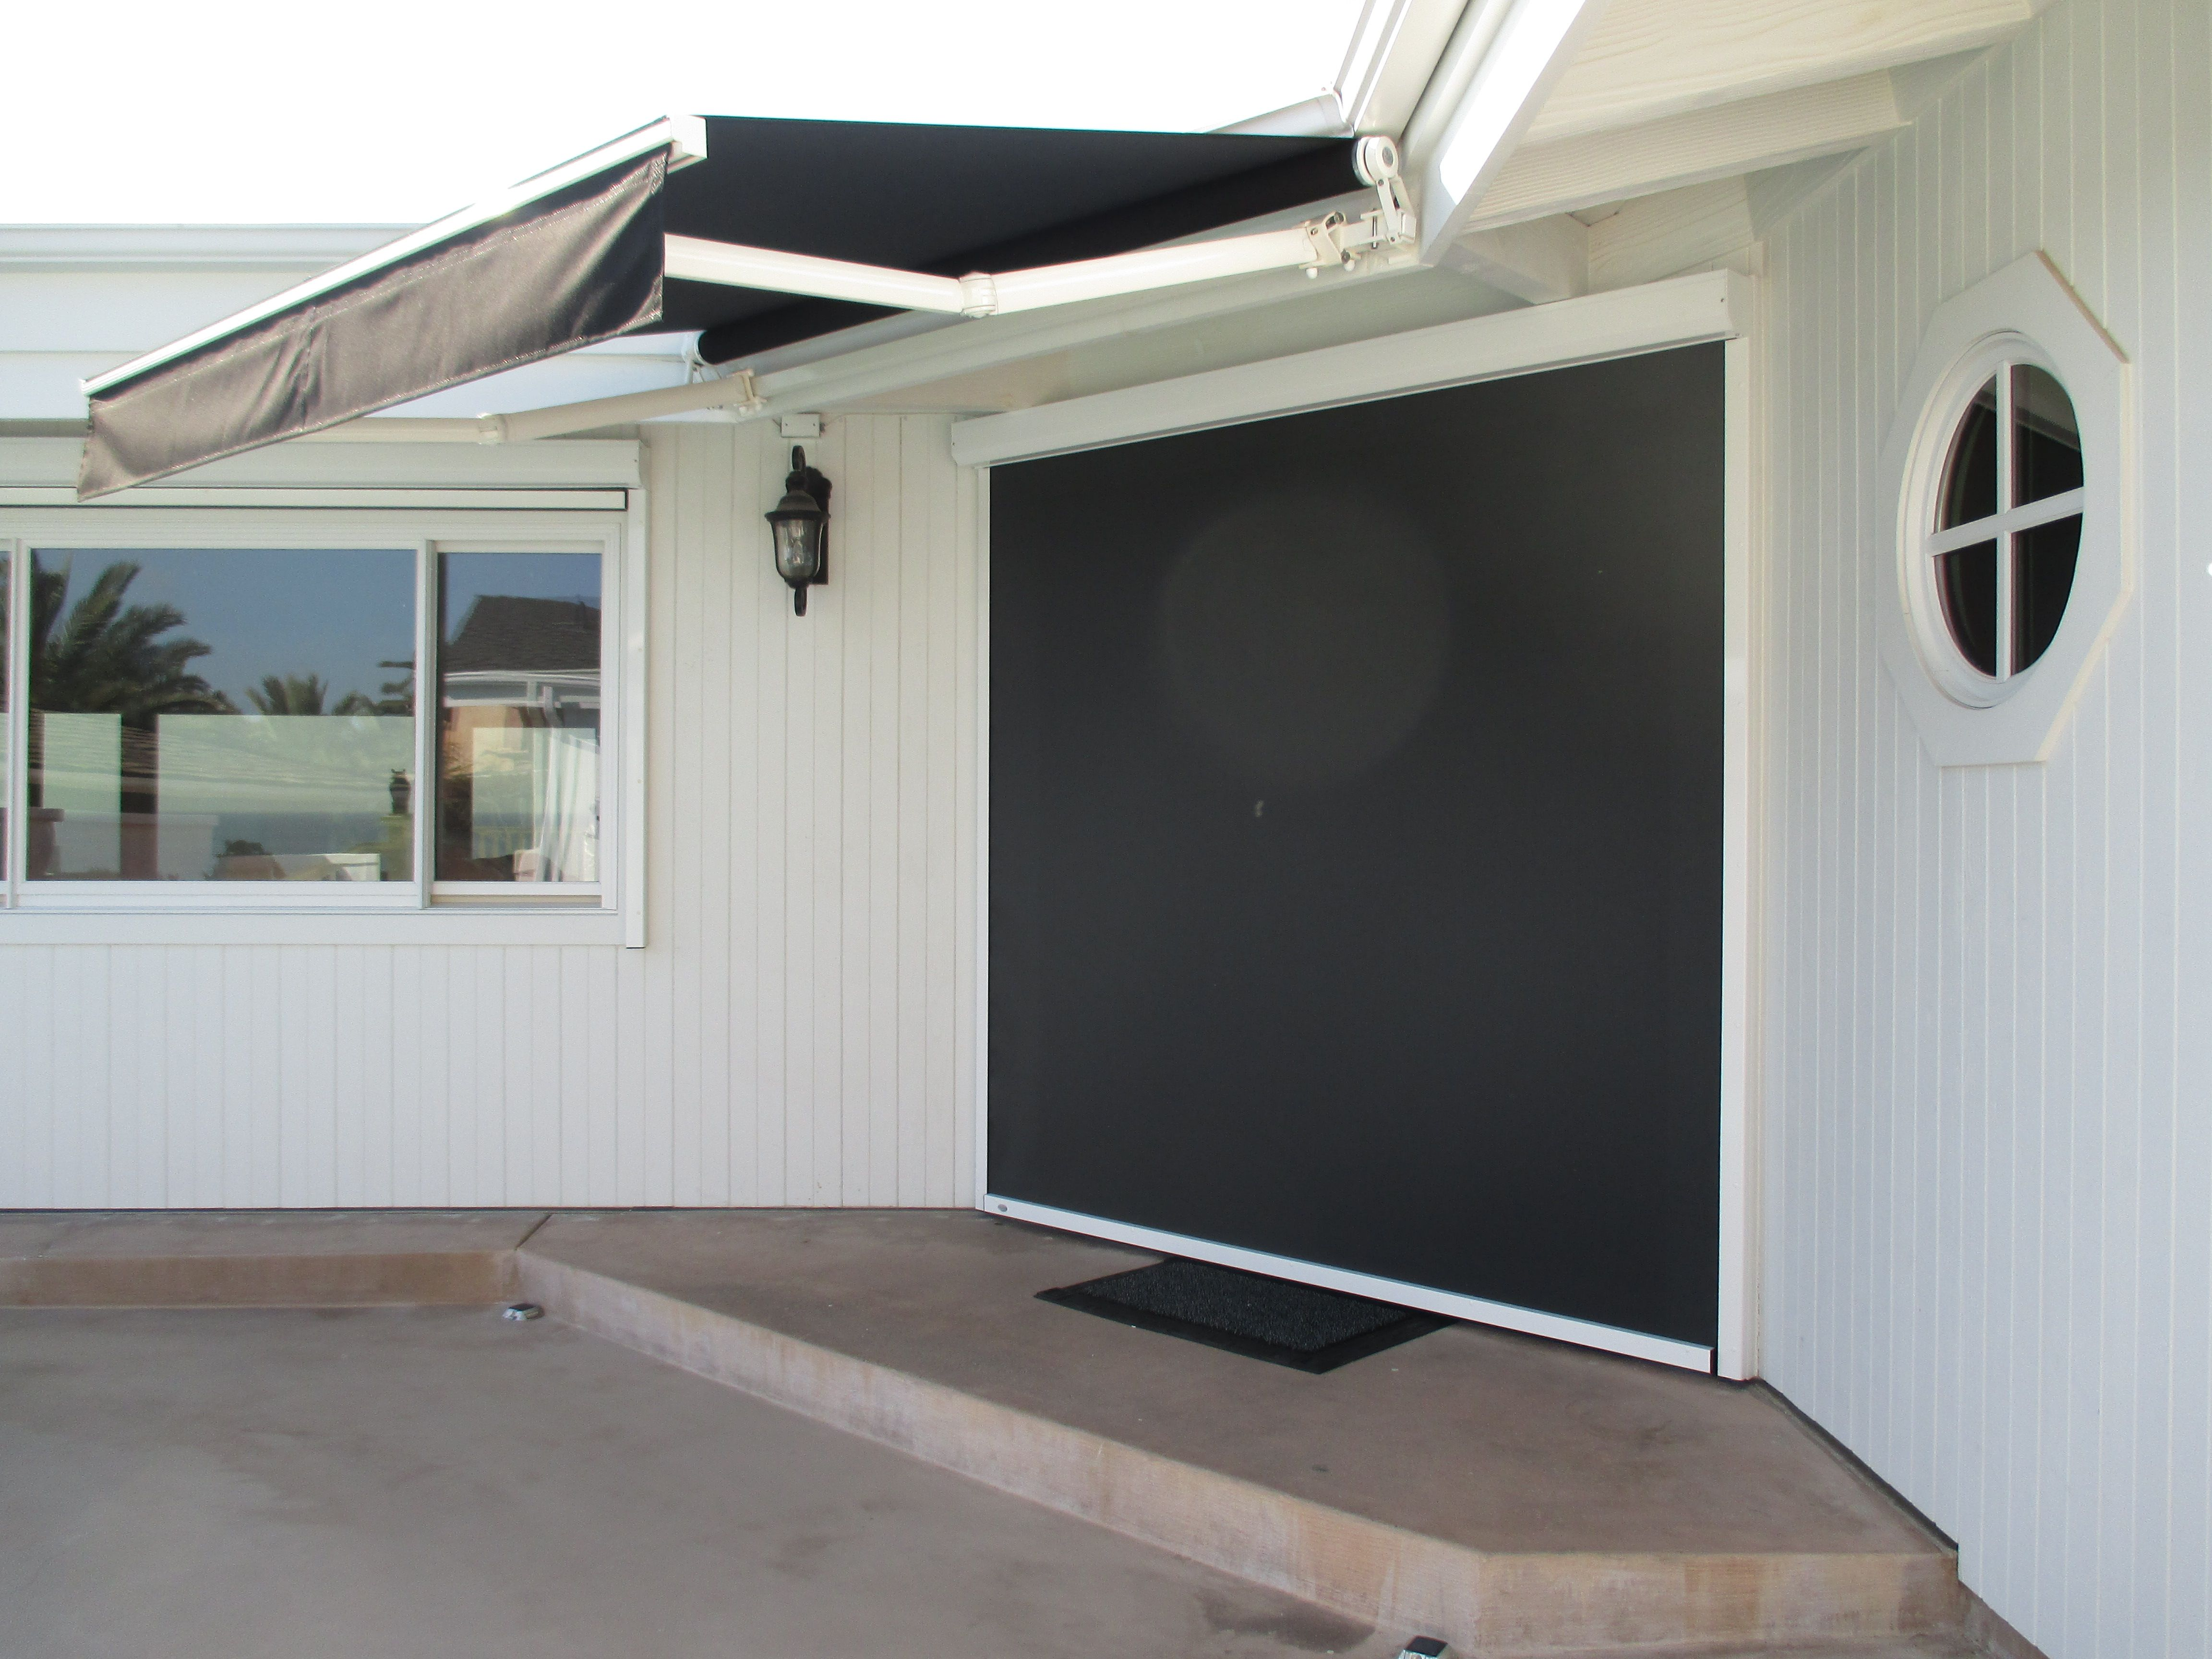 Retractable Awning & Retractable Motorized Power Screen installed